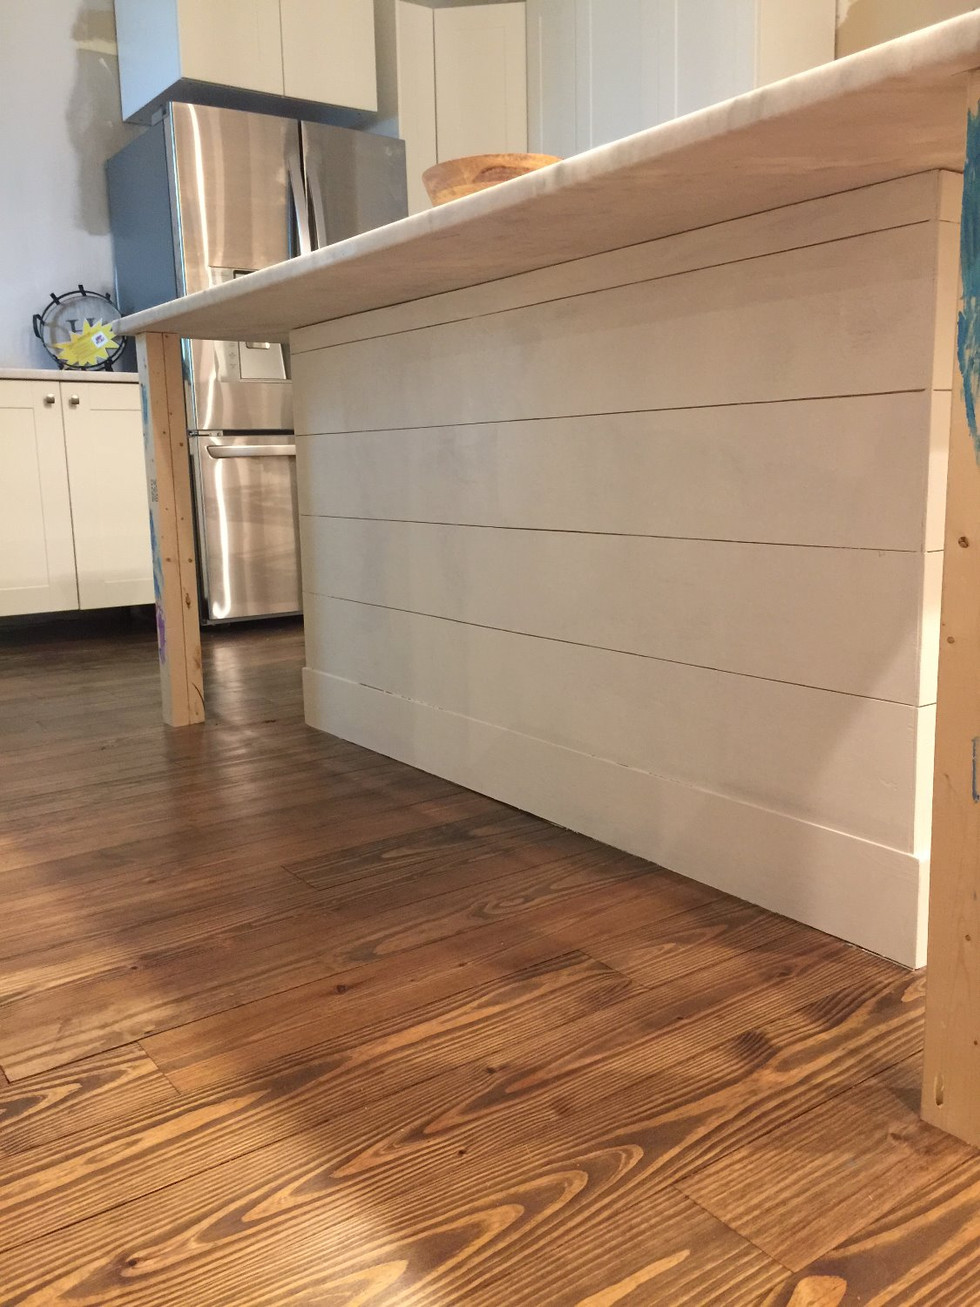 Installing an Ikea Kitchen Island, Part 2 of 3: The Wrap